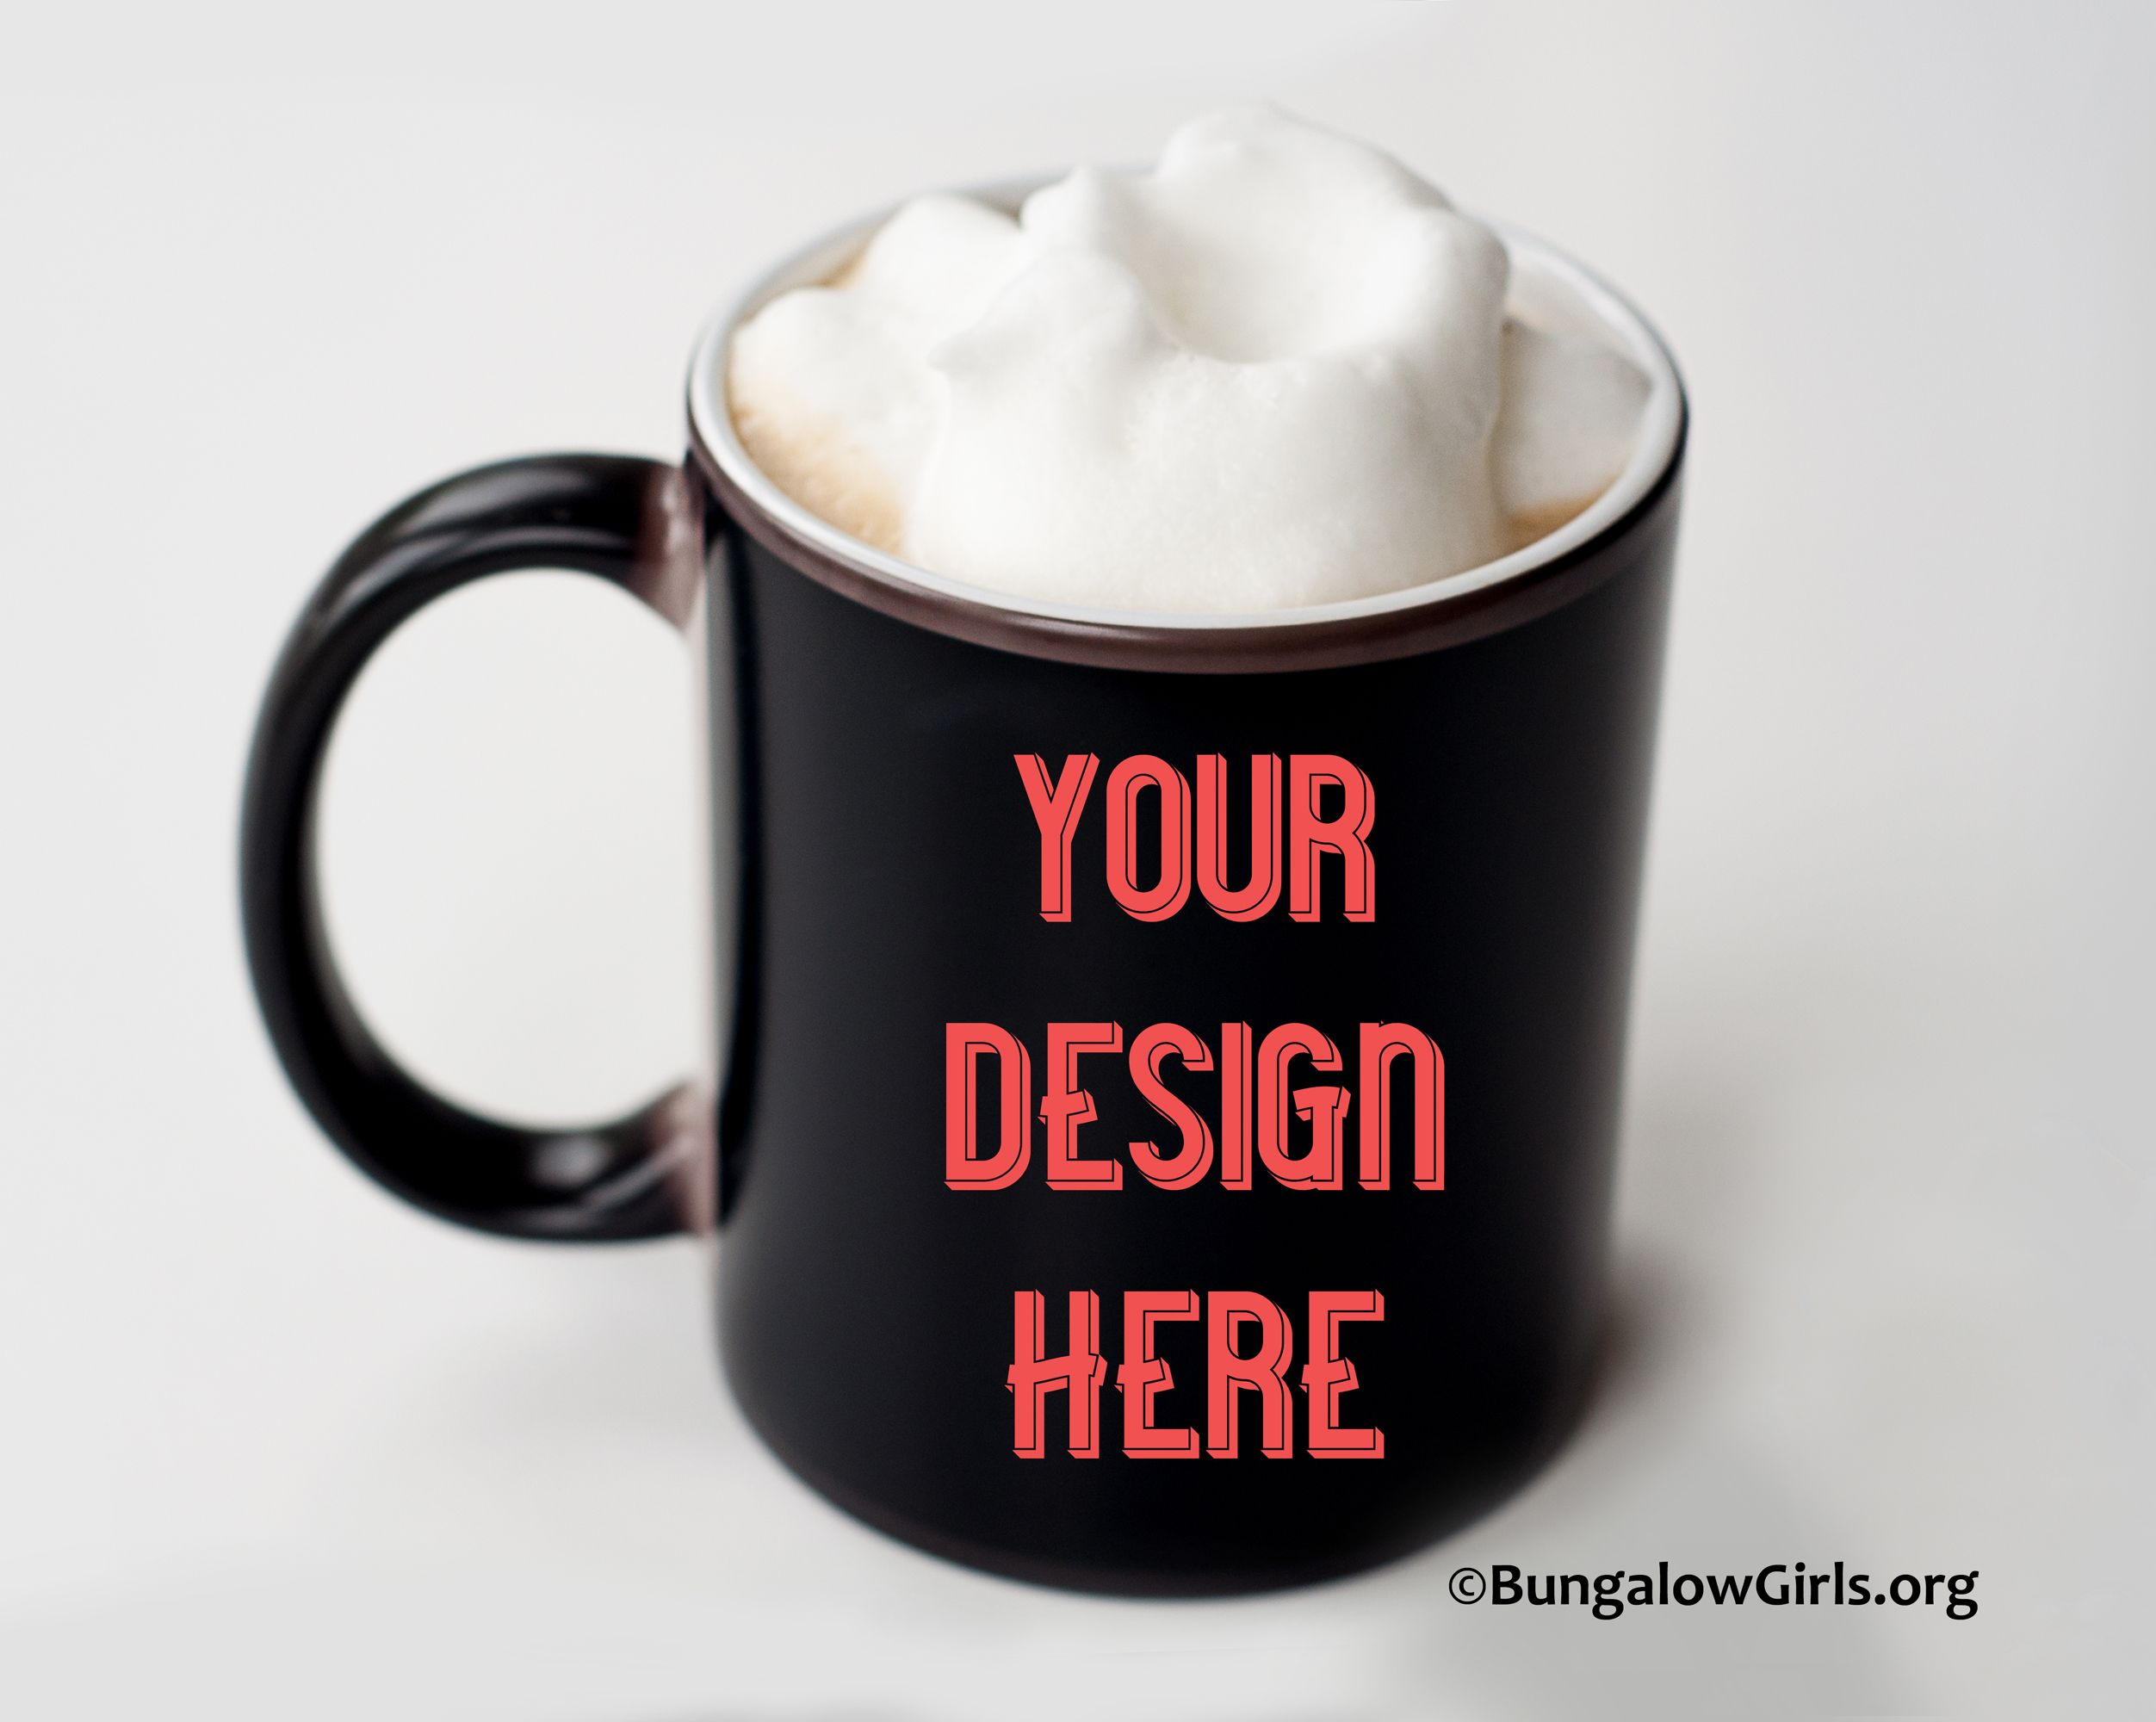 Mug mockup black Printful coffee cup with frothed milk